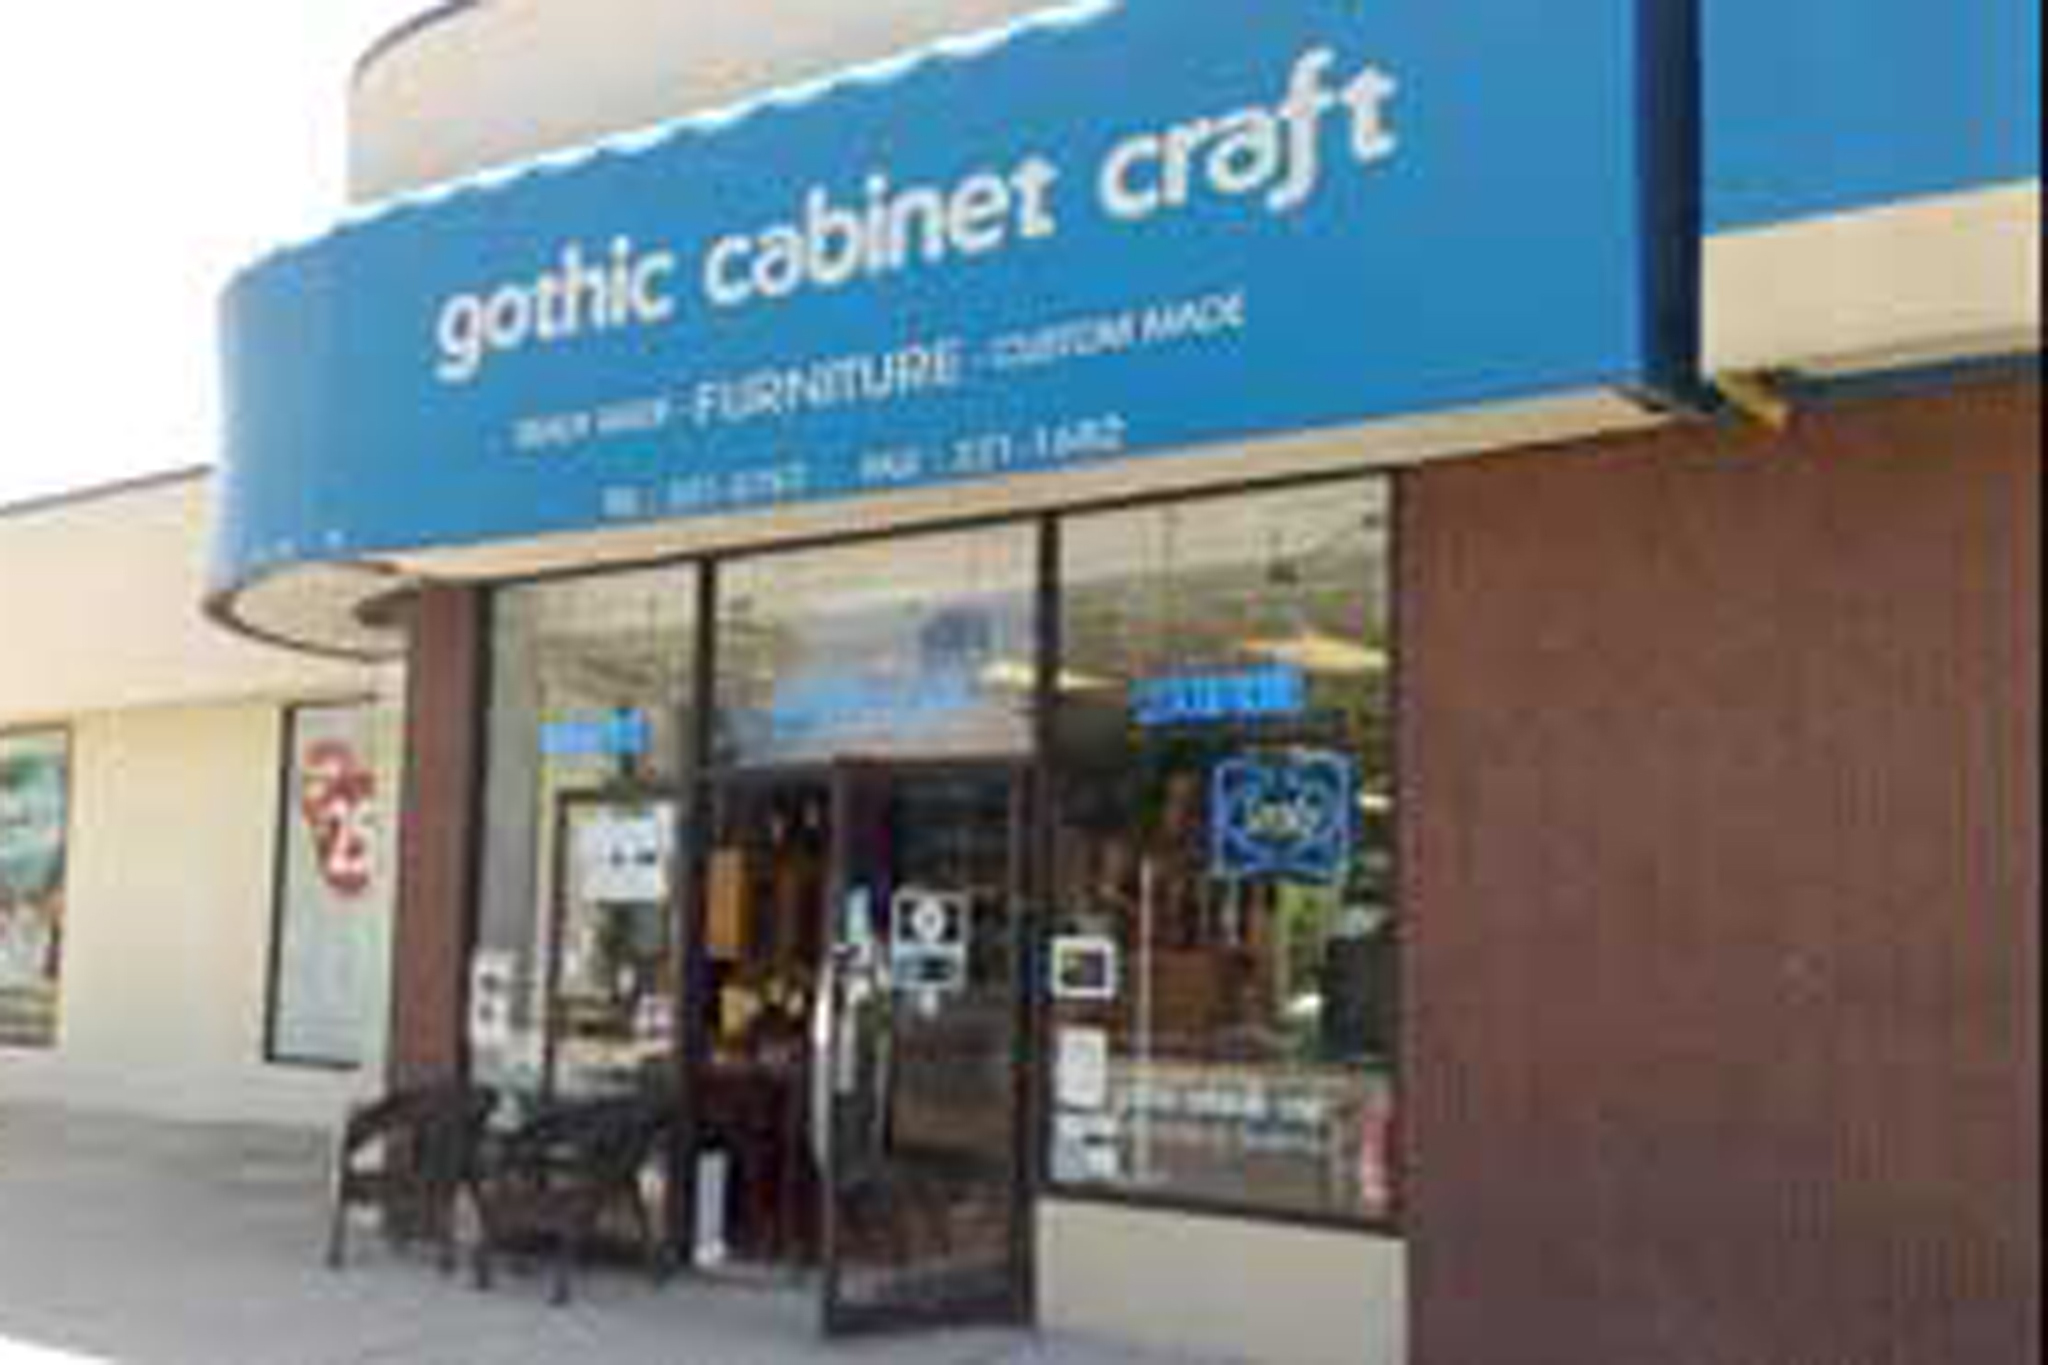 Gothic Cabinet Craft | Shopping in Queens, Queens